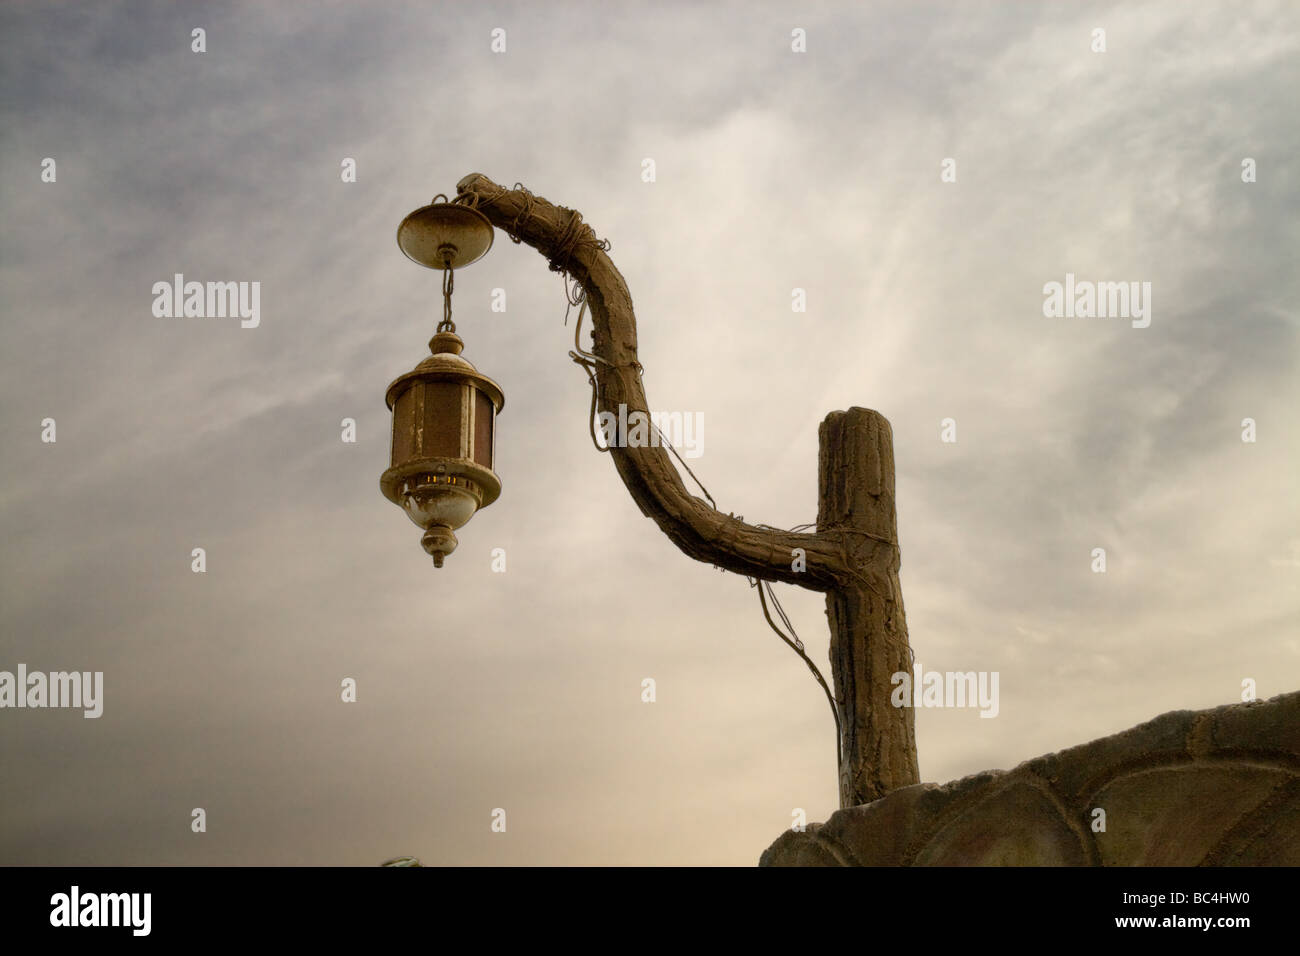 Old street lamp in Dahab, Republic of Egypt - Stock Image